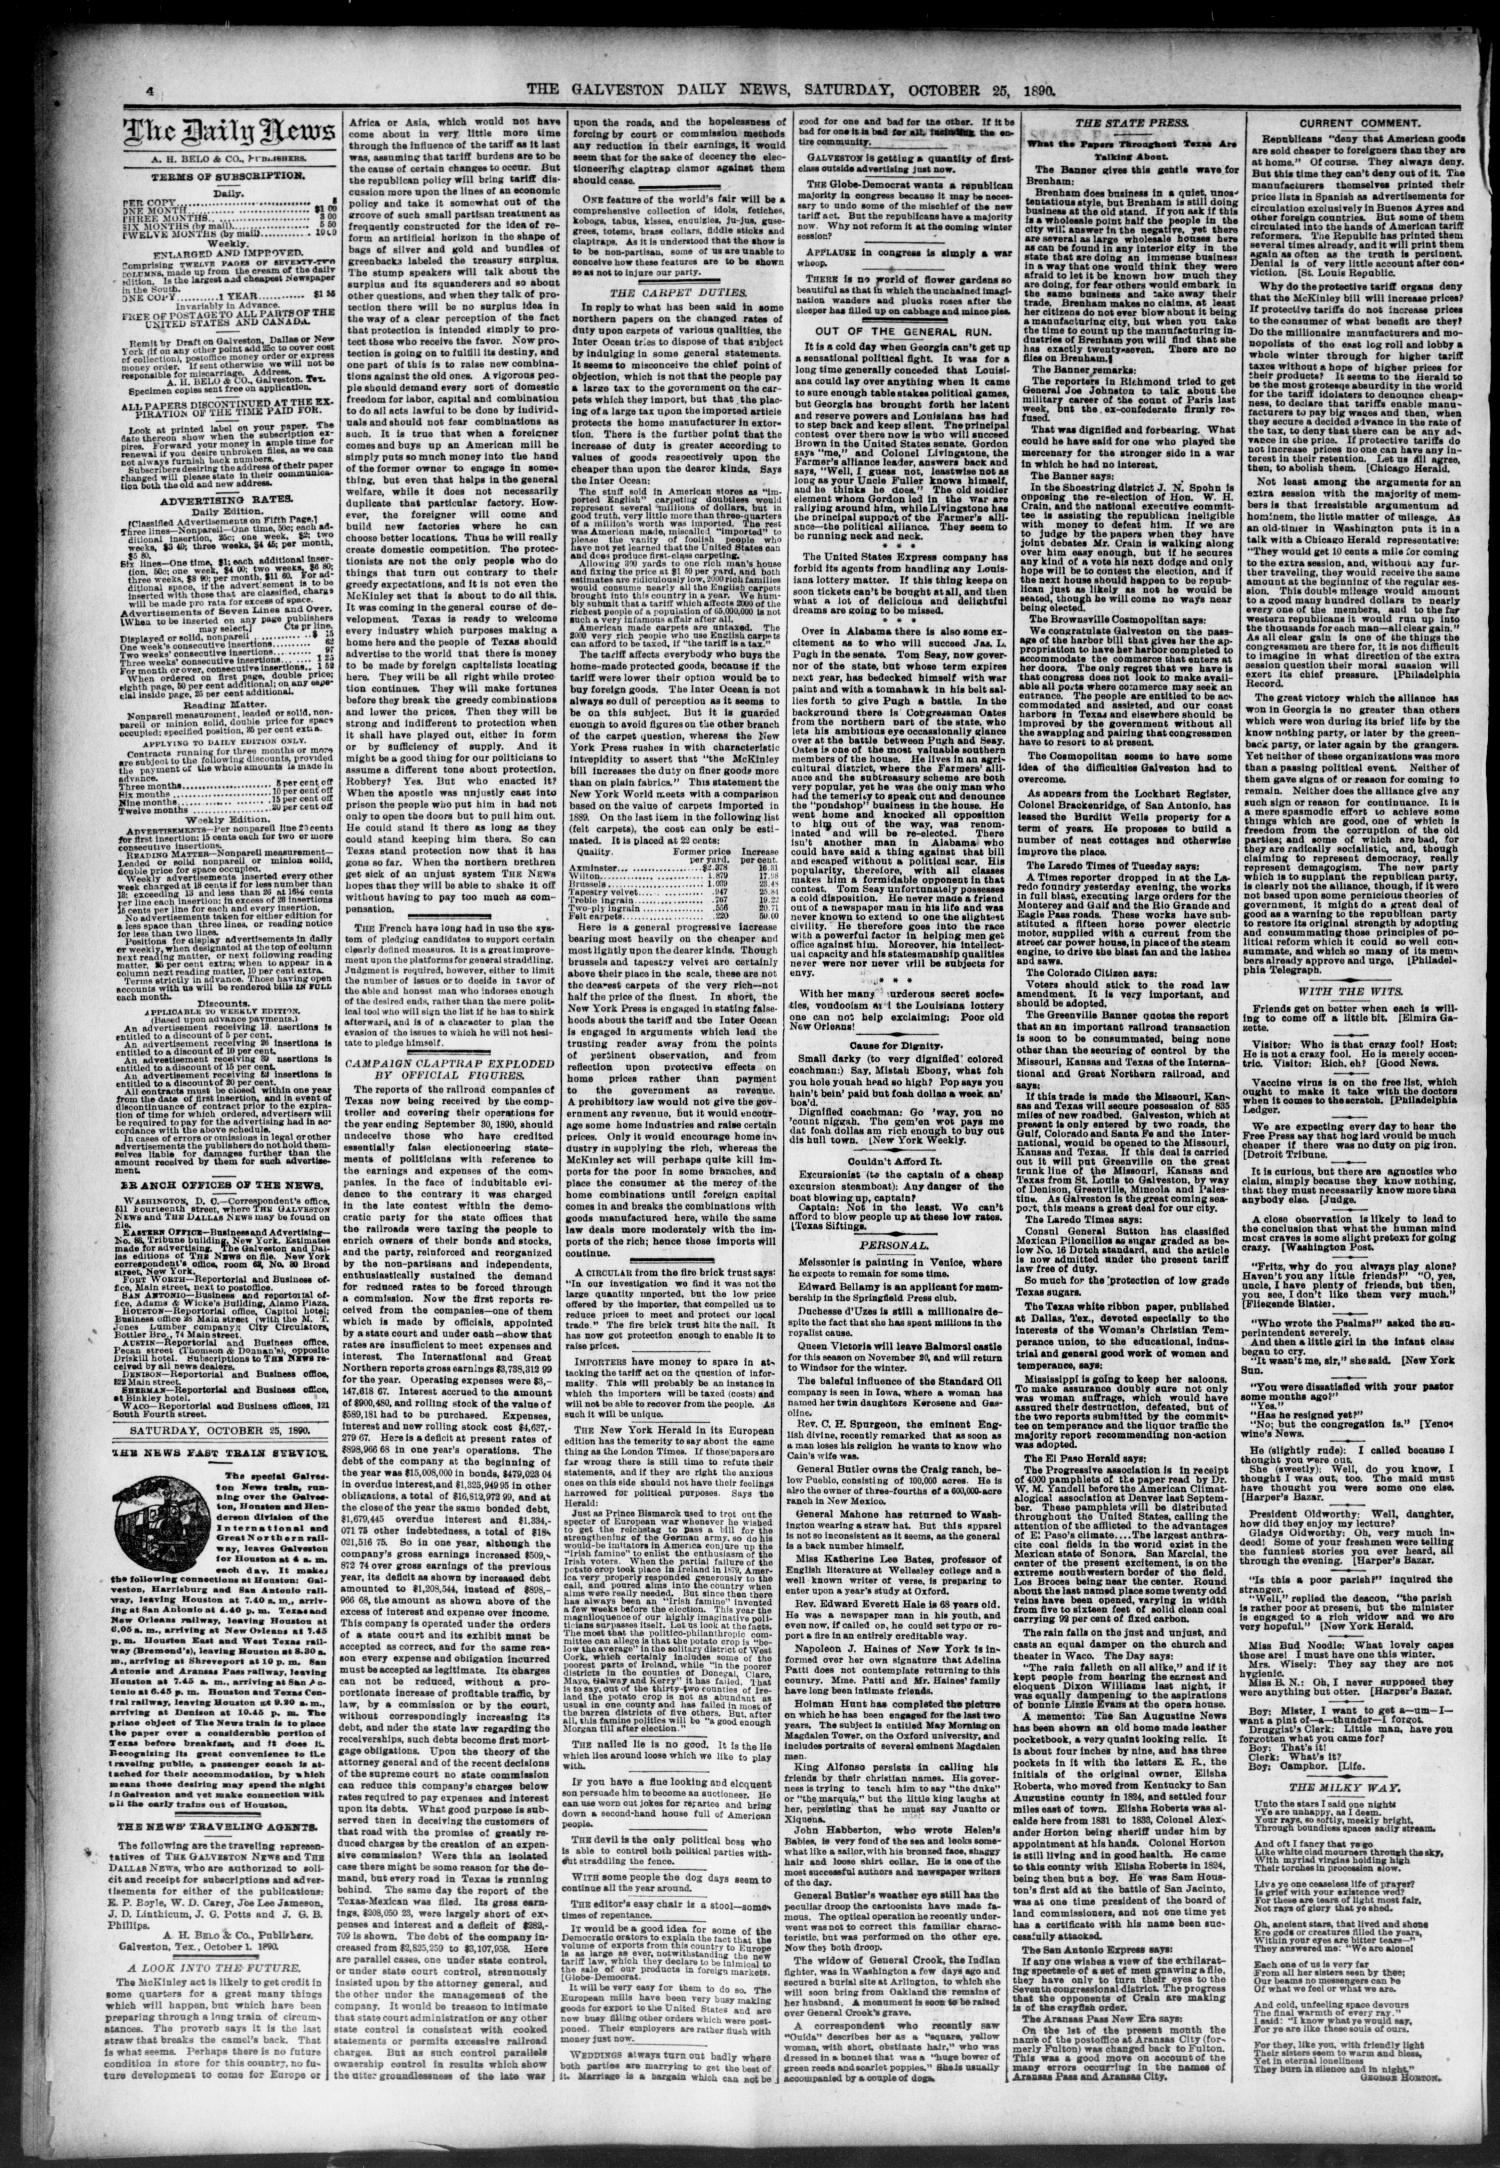 The Galveston Daily News. (Galveston, Tex.), Vol. 49, No. 179, Ed. 1 Saturday, October 25, 1890                                                                                                      [Sequence #]: 4 of 8